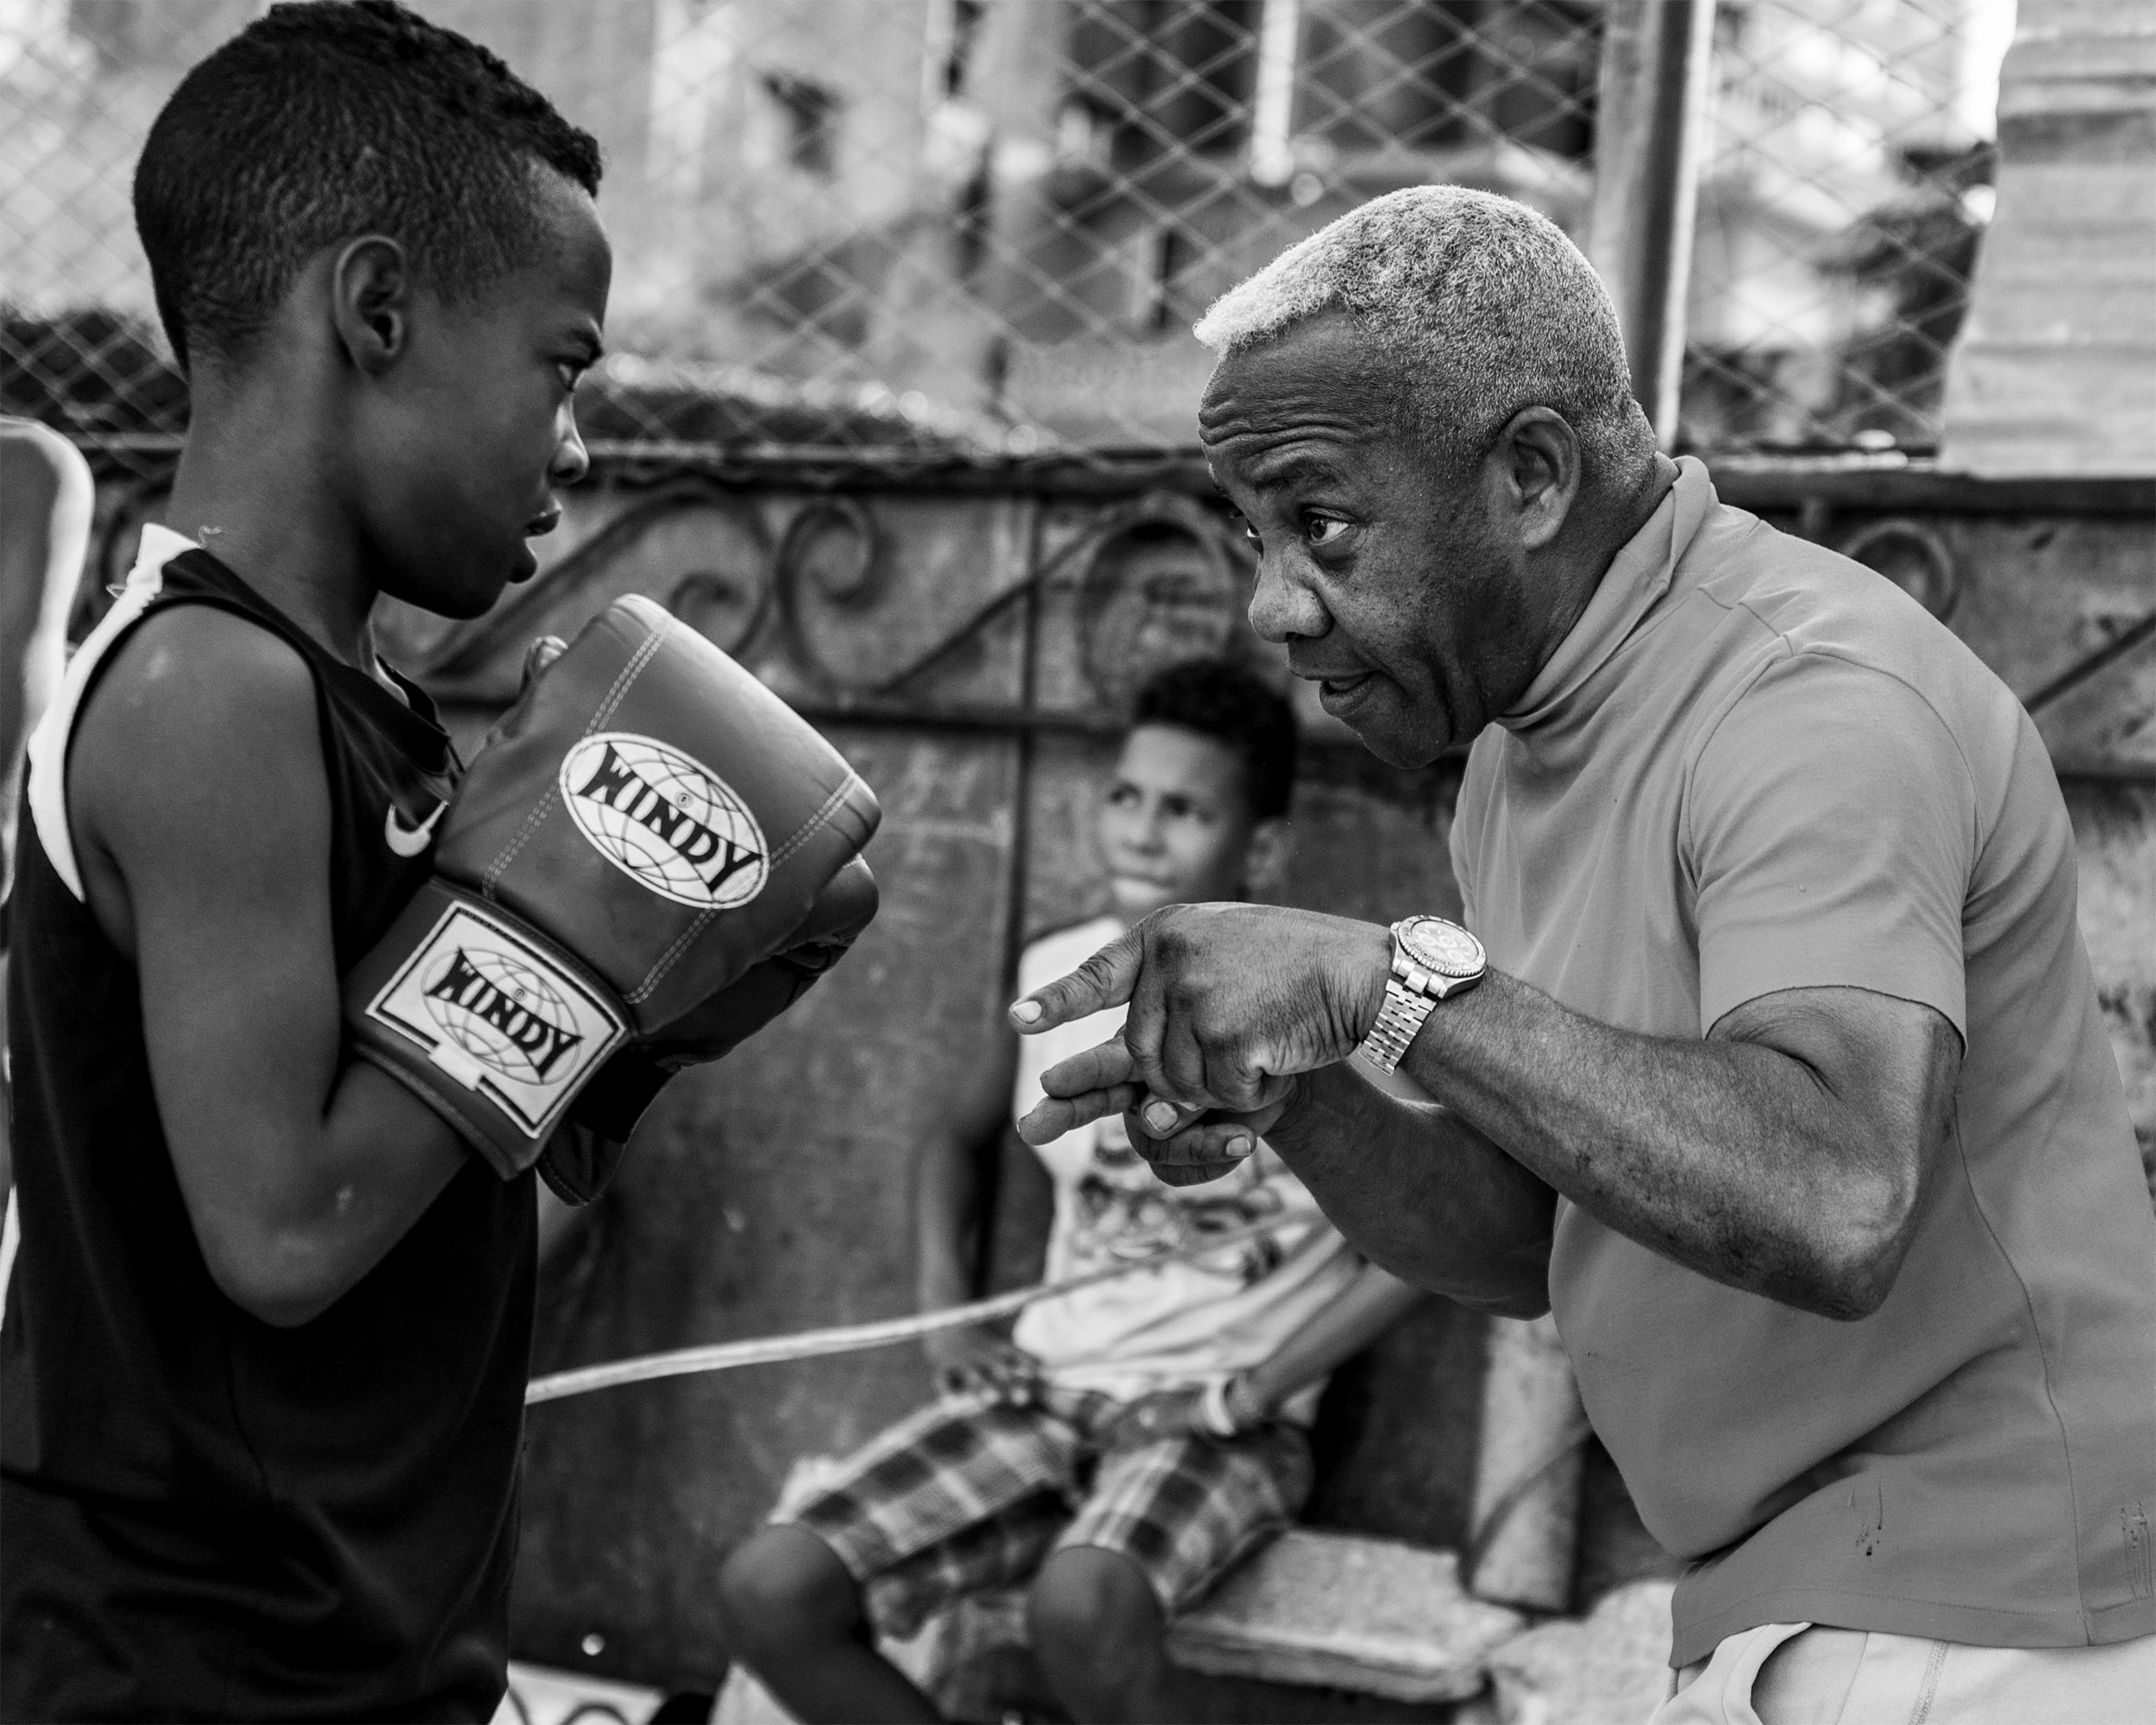 HAVANA_Boxing_2018_APR_LGP_6566_BW_WEB.jpg